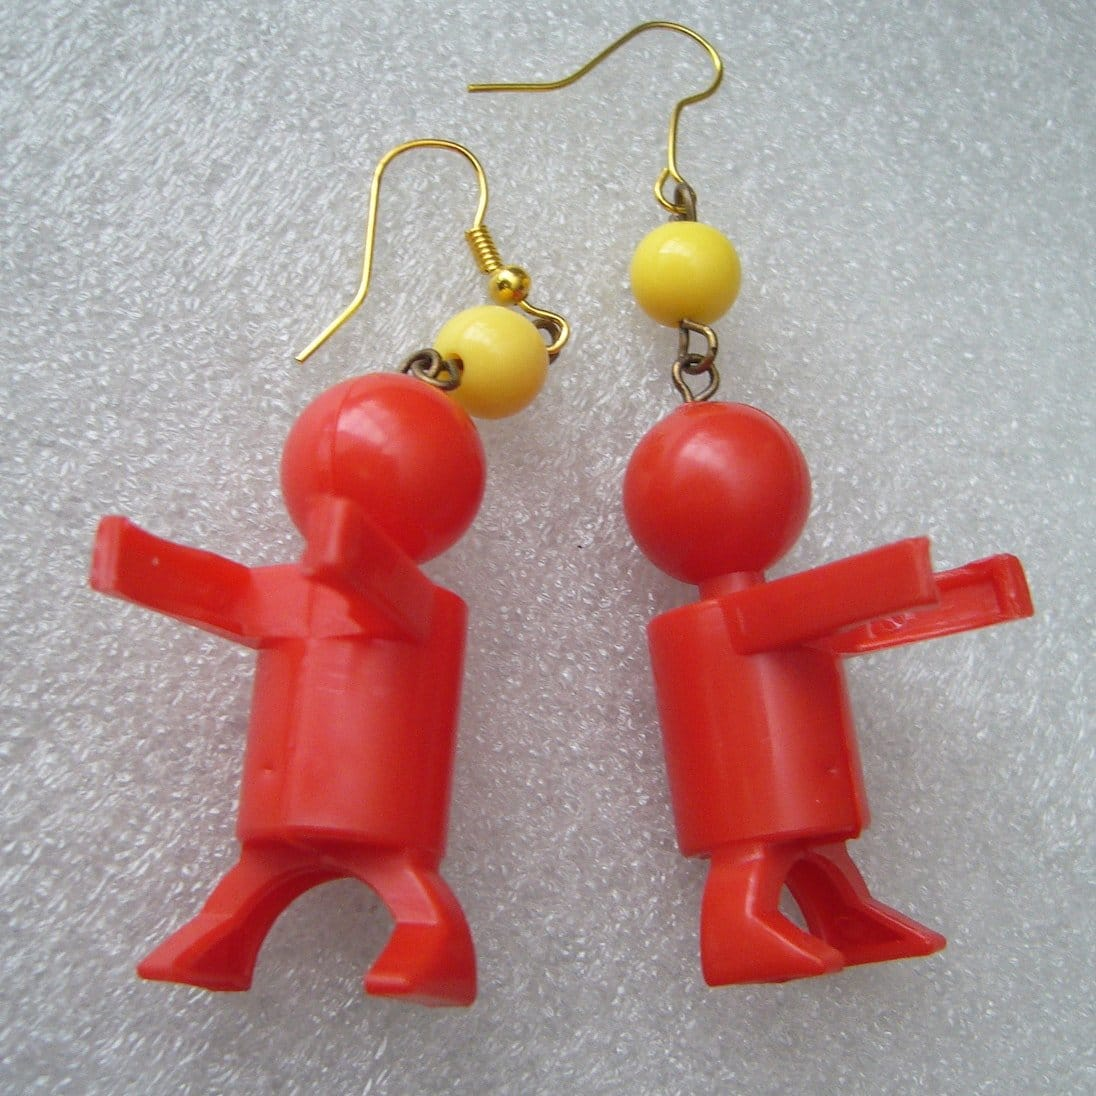 Vintage style early plastic red Little People charms earrings